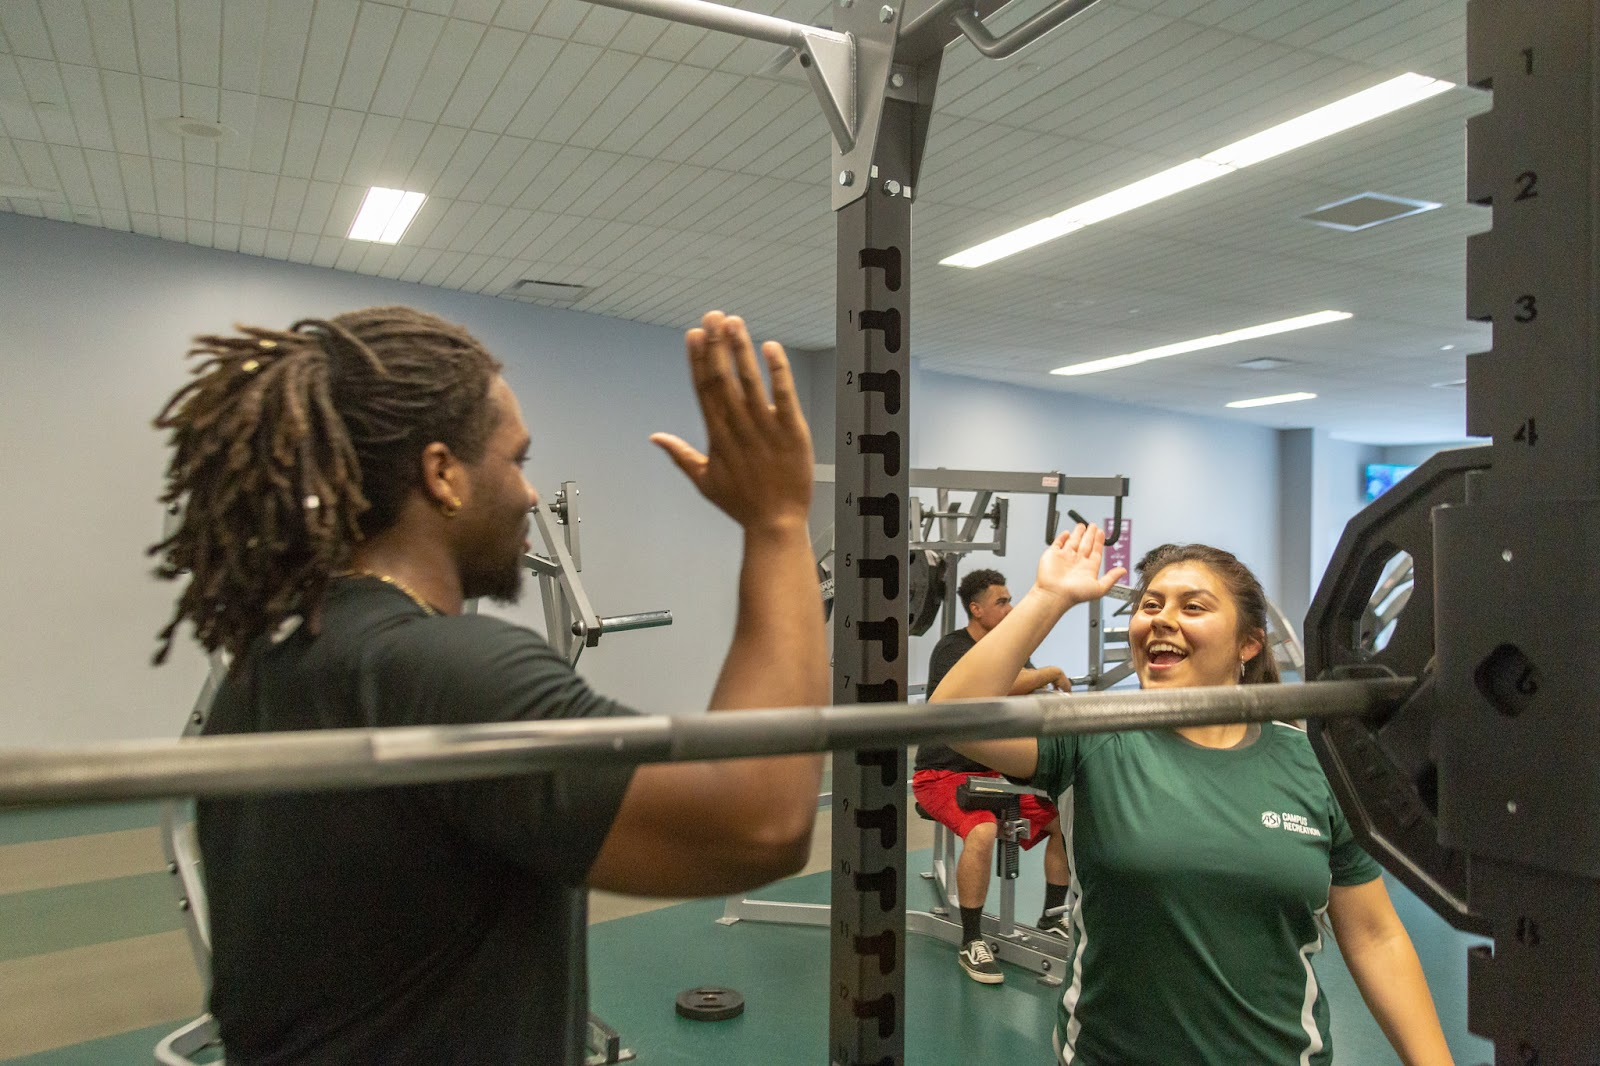 A member going in for a high five with Arellano Rodriguez after a personal training session